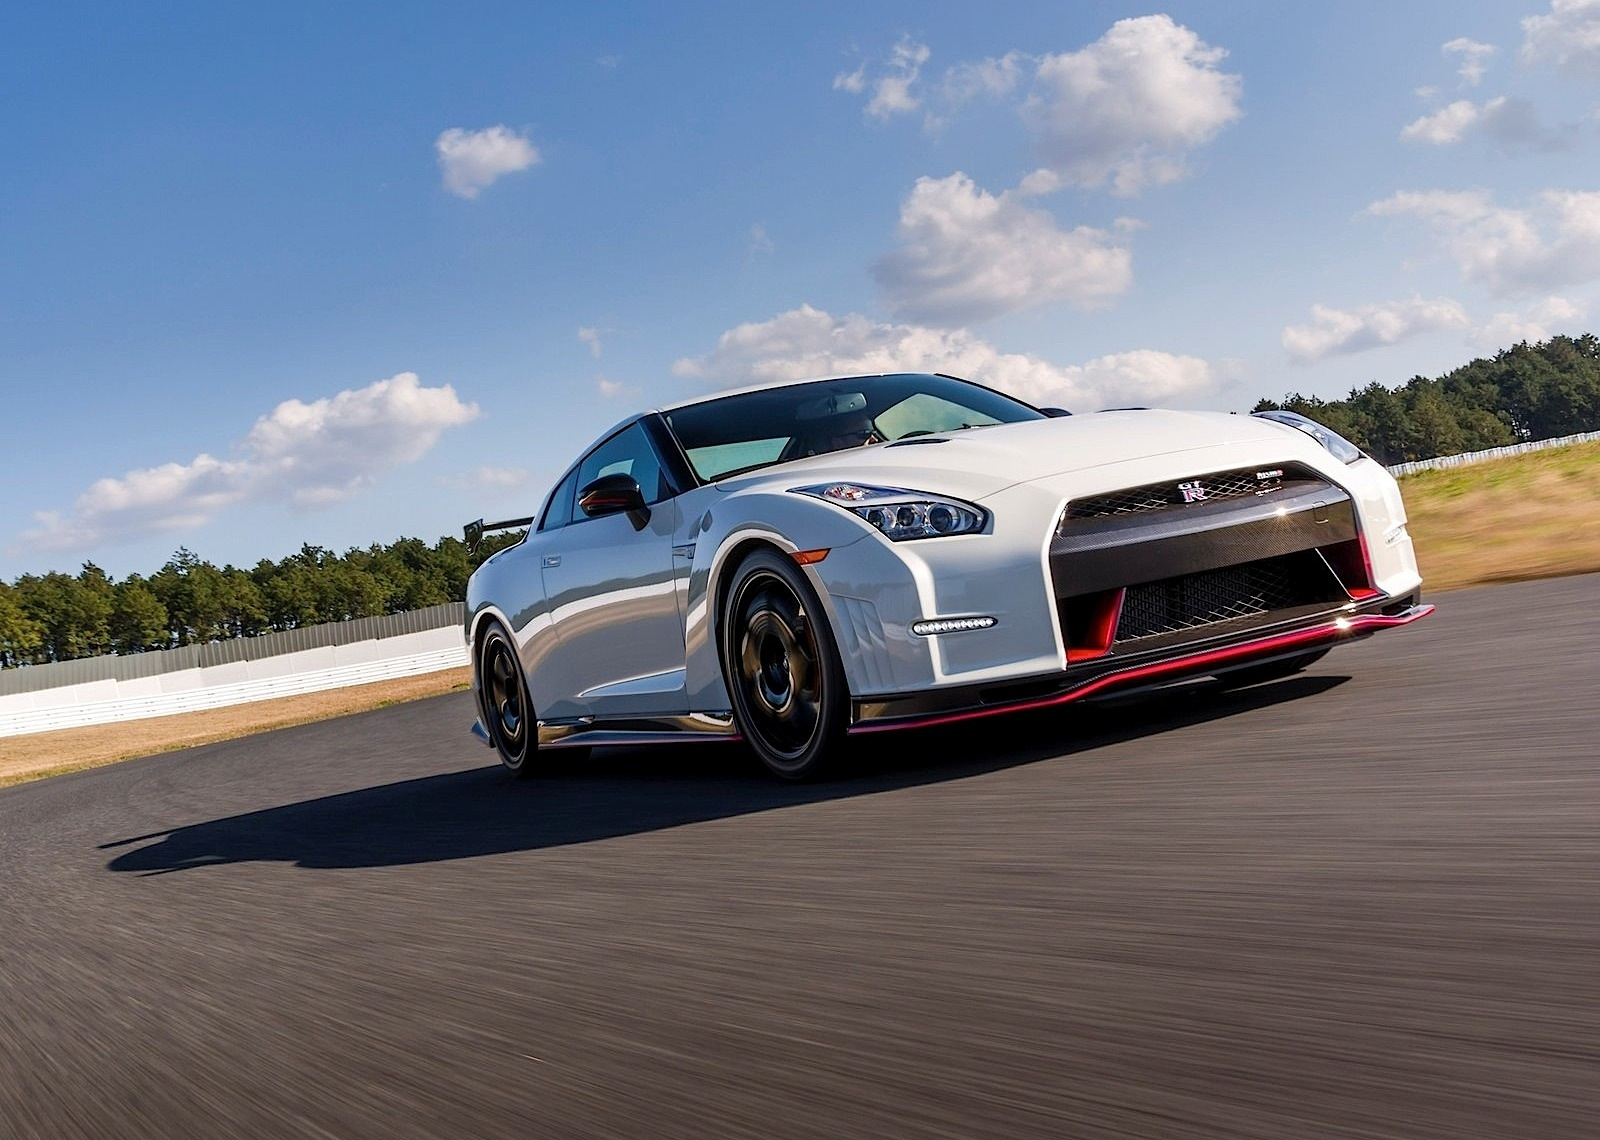 2017 Nissan Gt R Nismo Wallpapers Hd Images: 2017 Nissan GT-R Nismo Priced In Europe From €184,950 / £